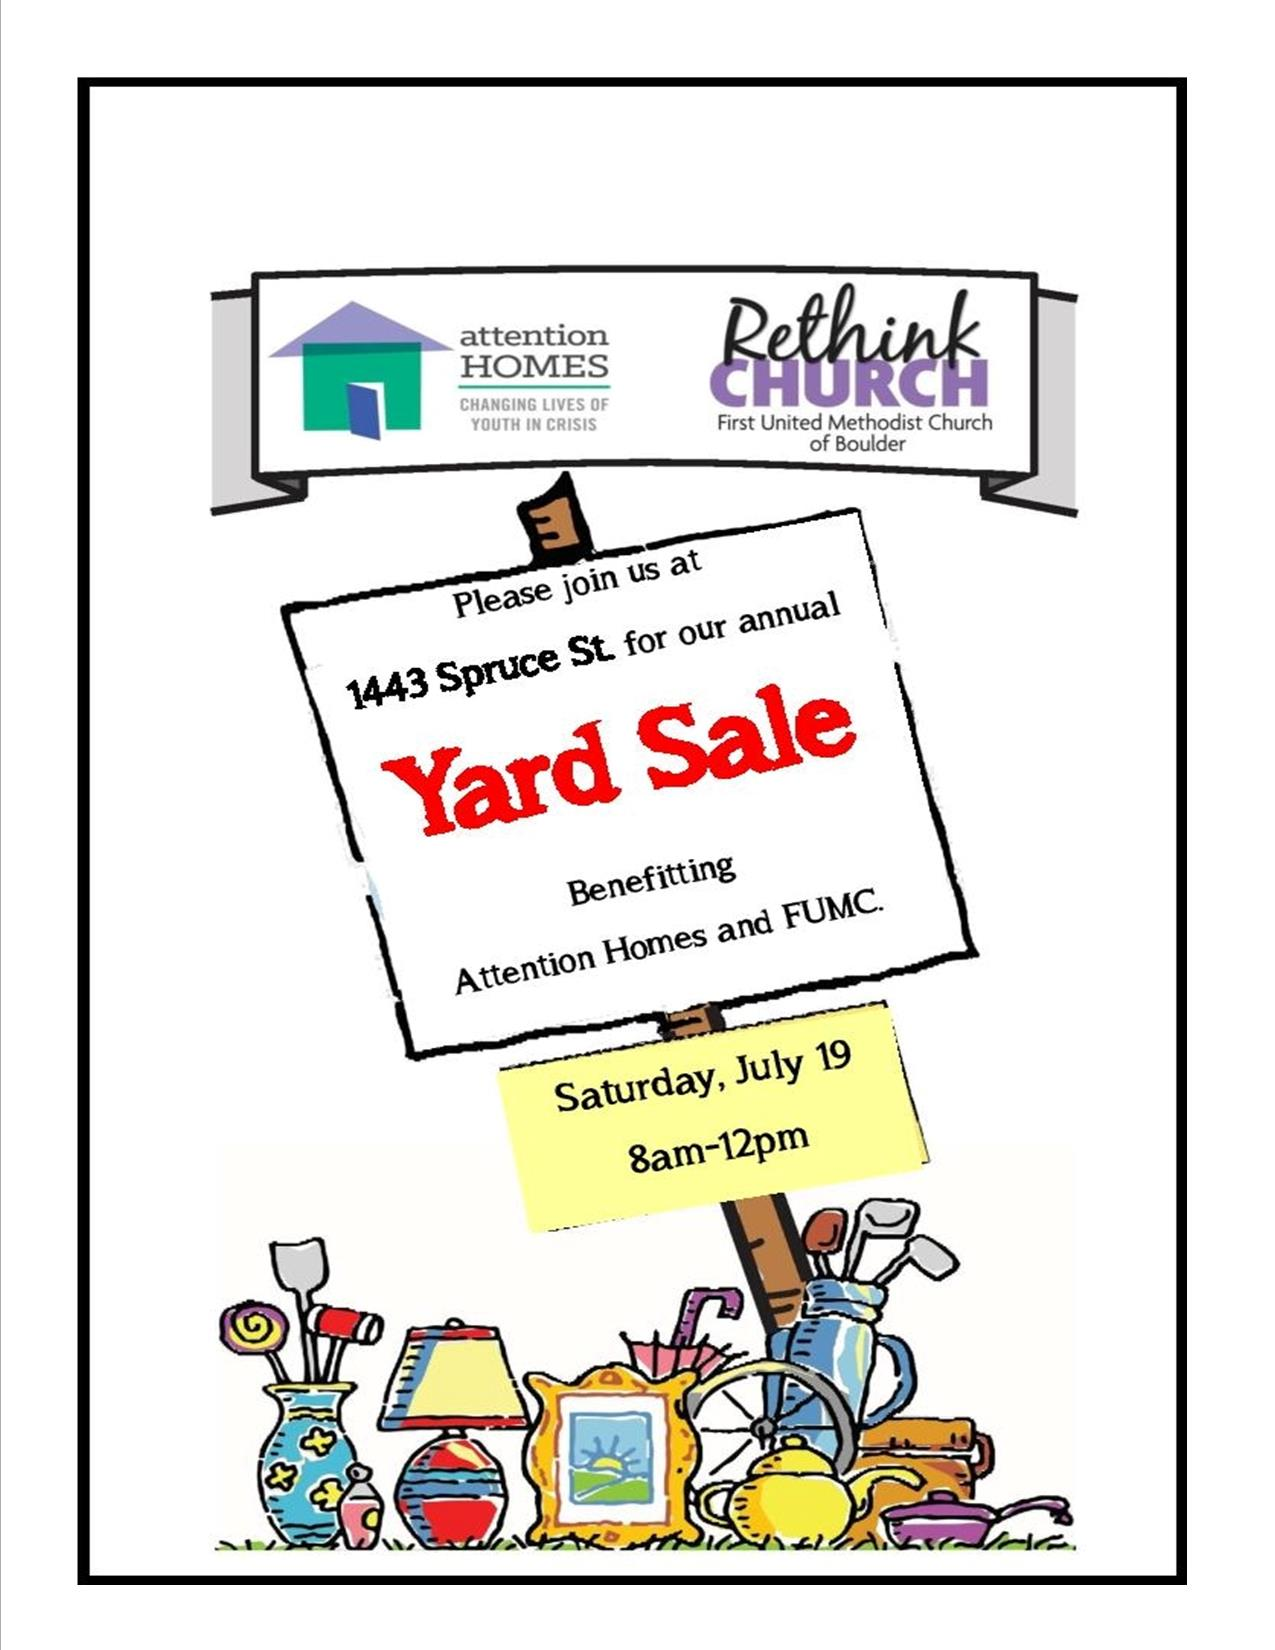 Upcoming Events Fumc And Attention Homes Yard Sale